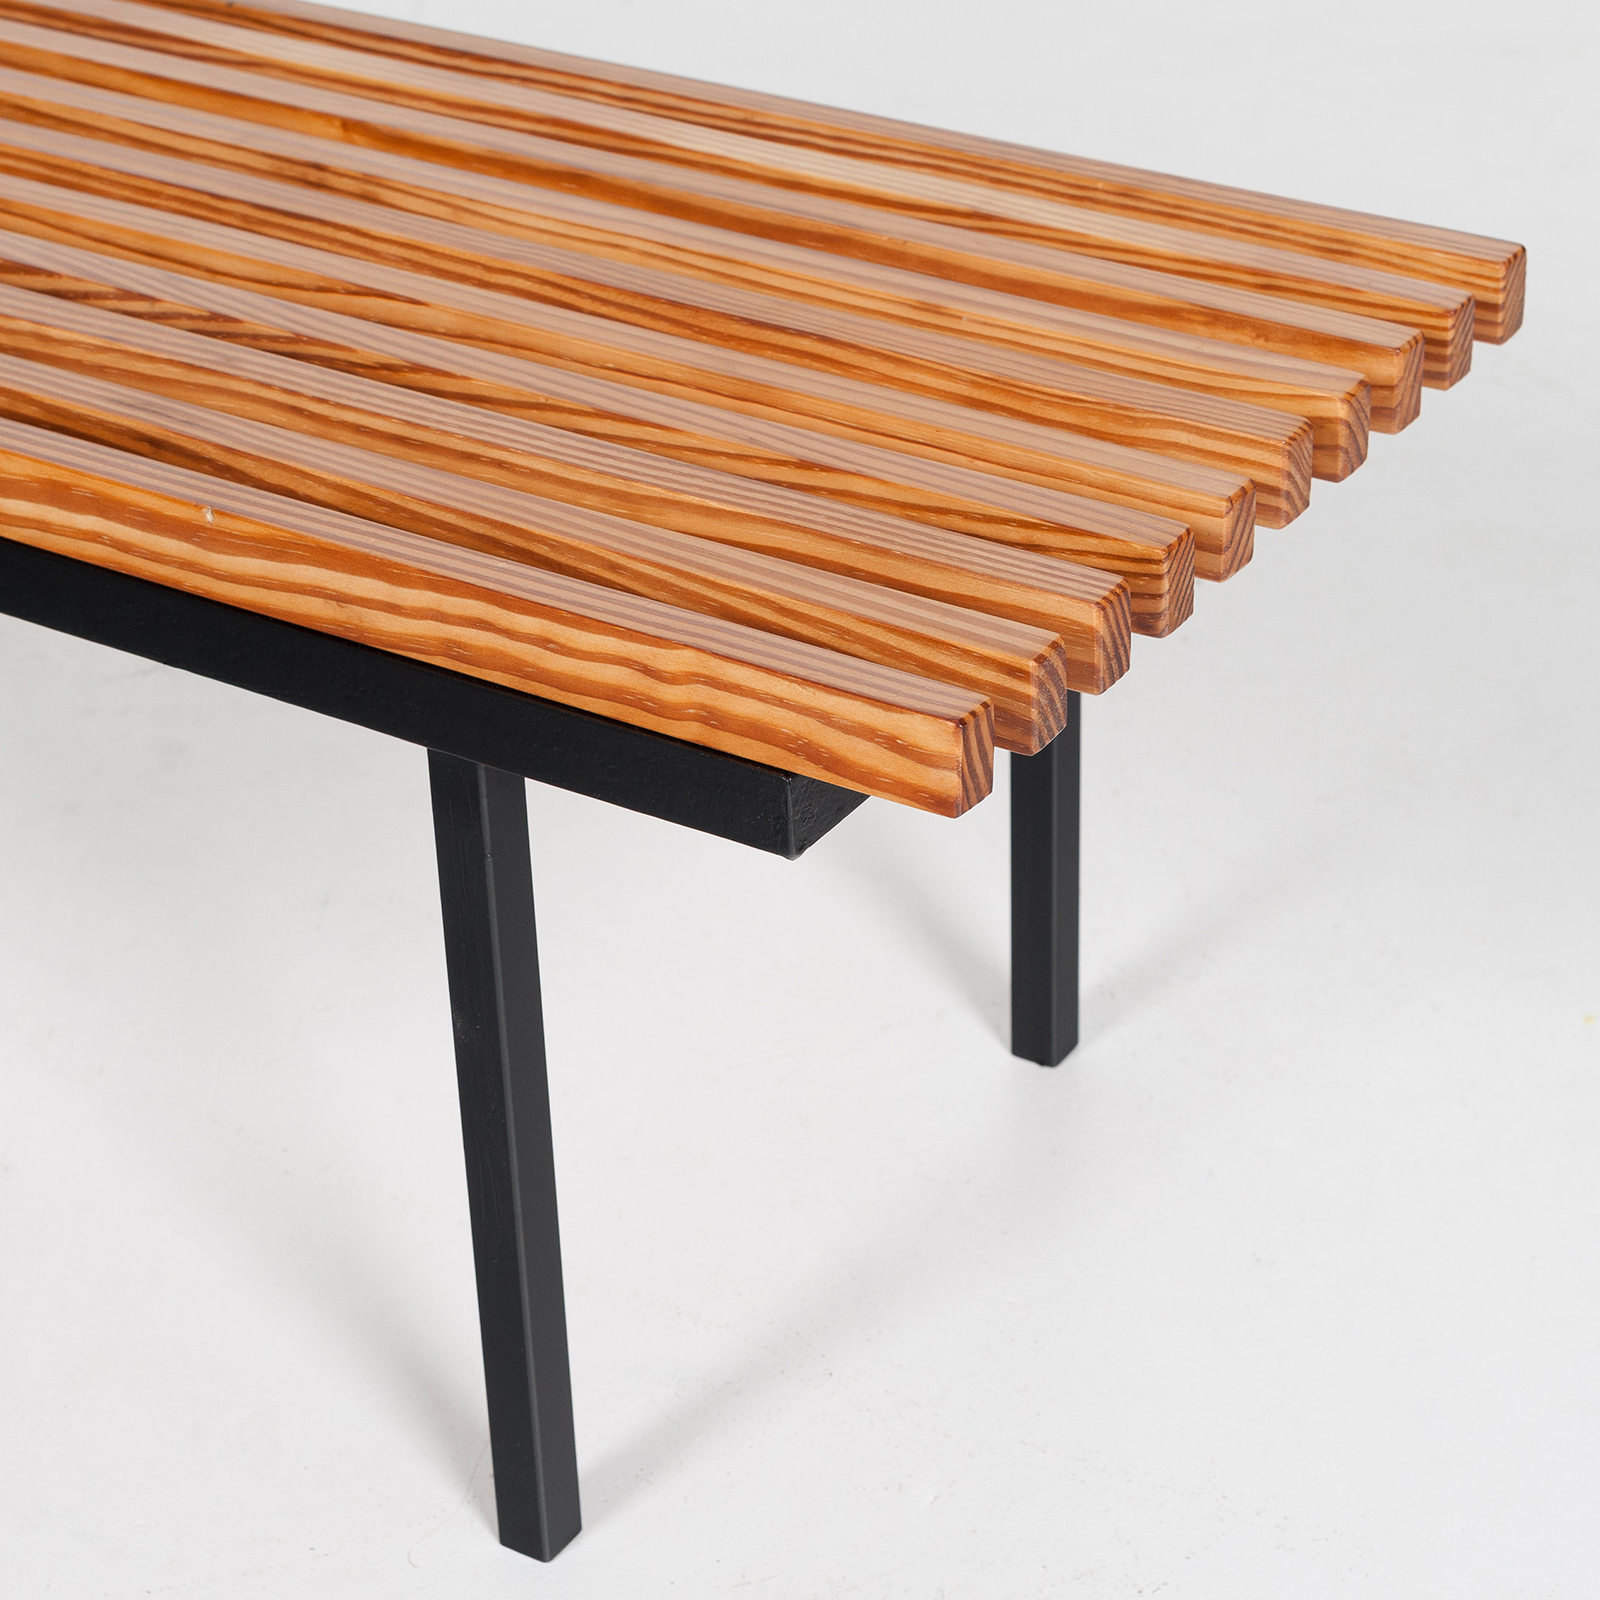 Bench In Pine And Steel, 1950s, The Netherlands 13